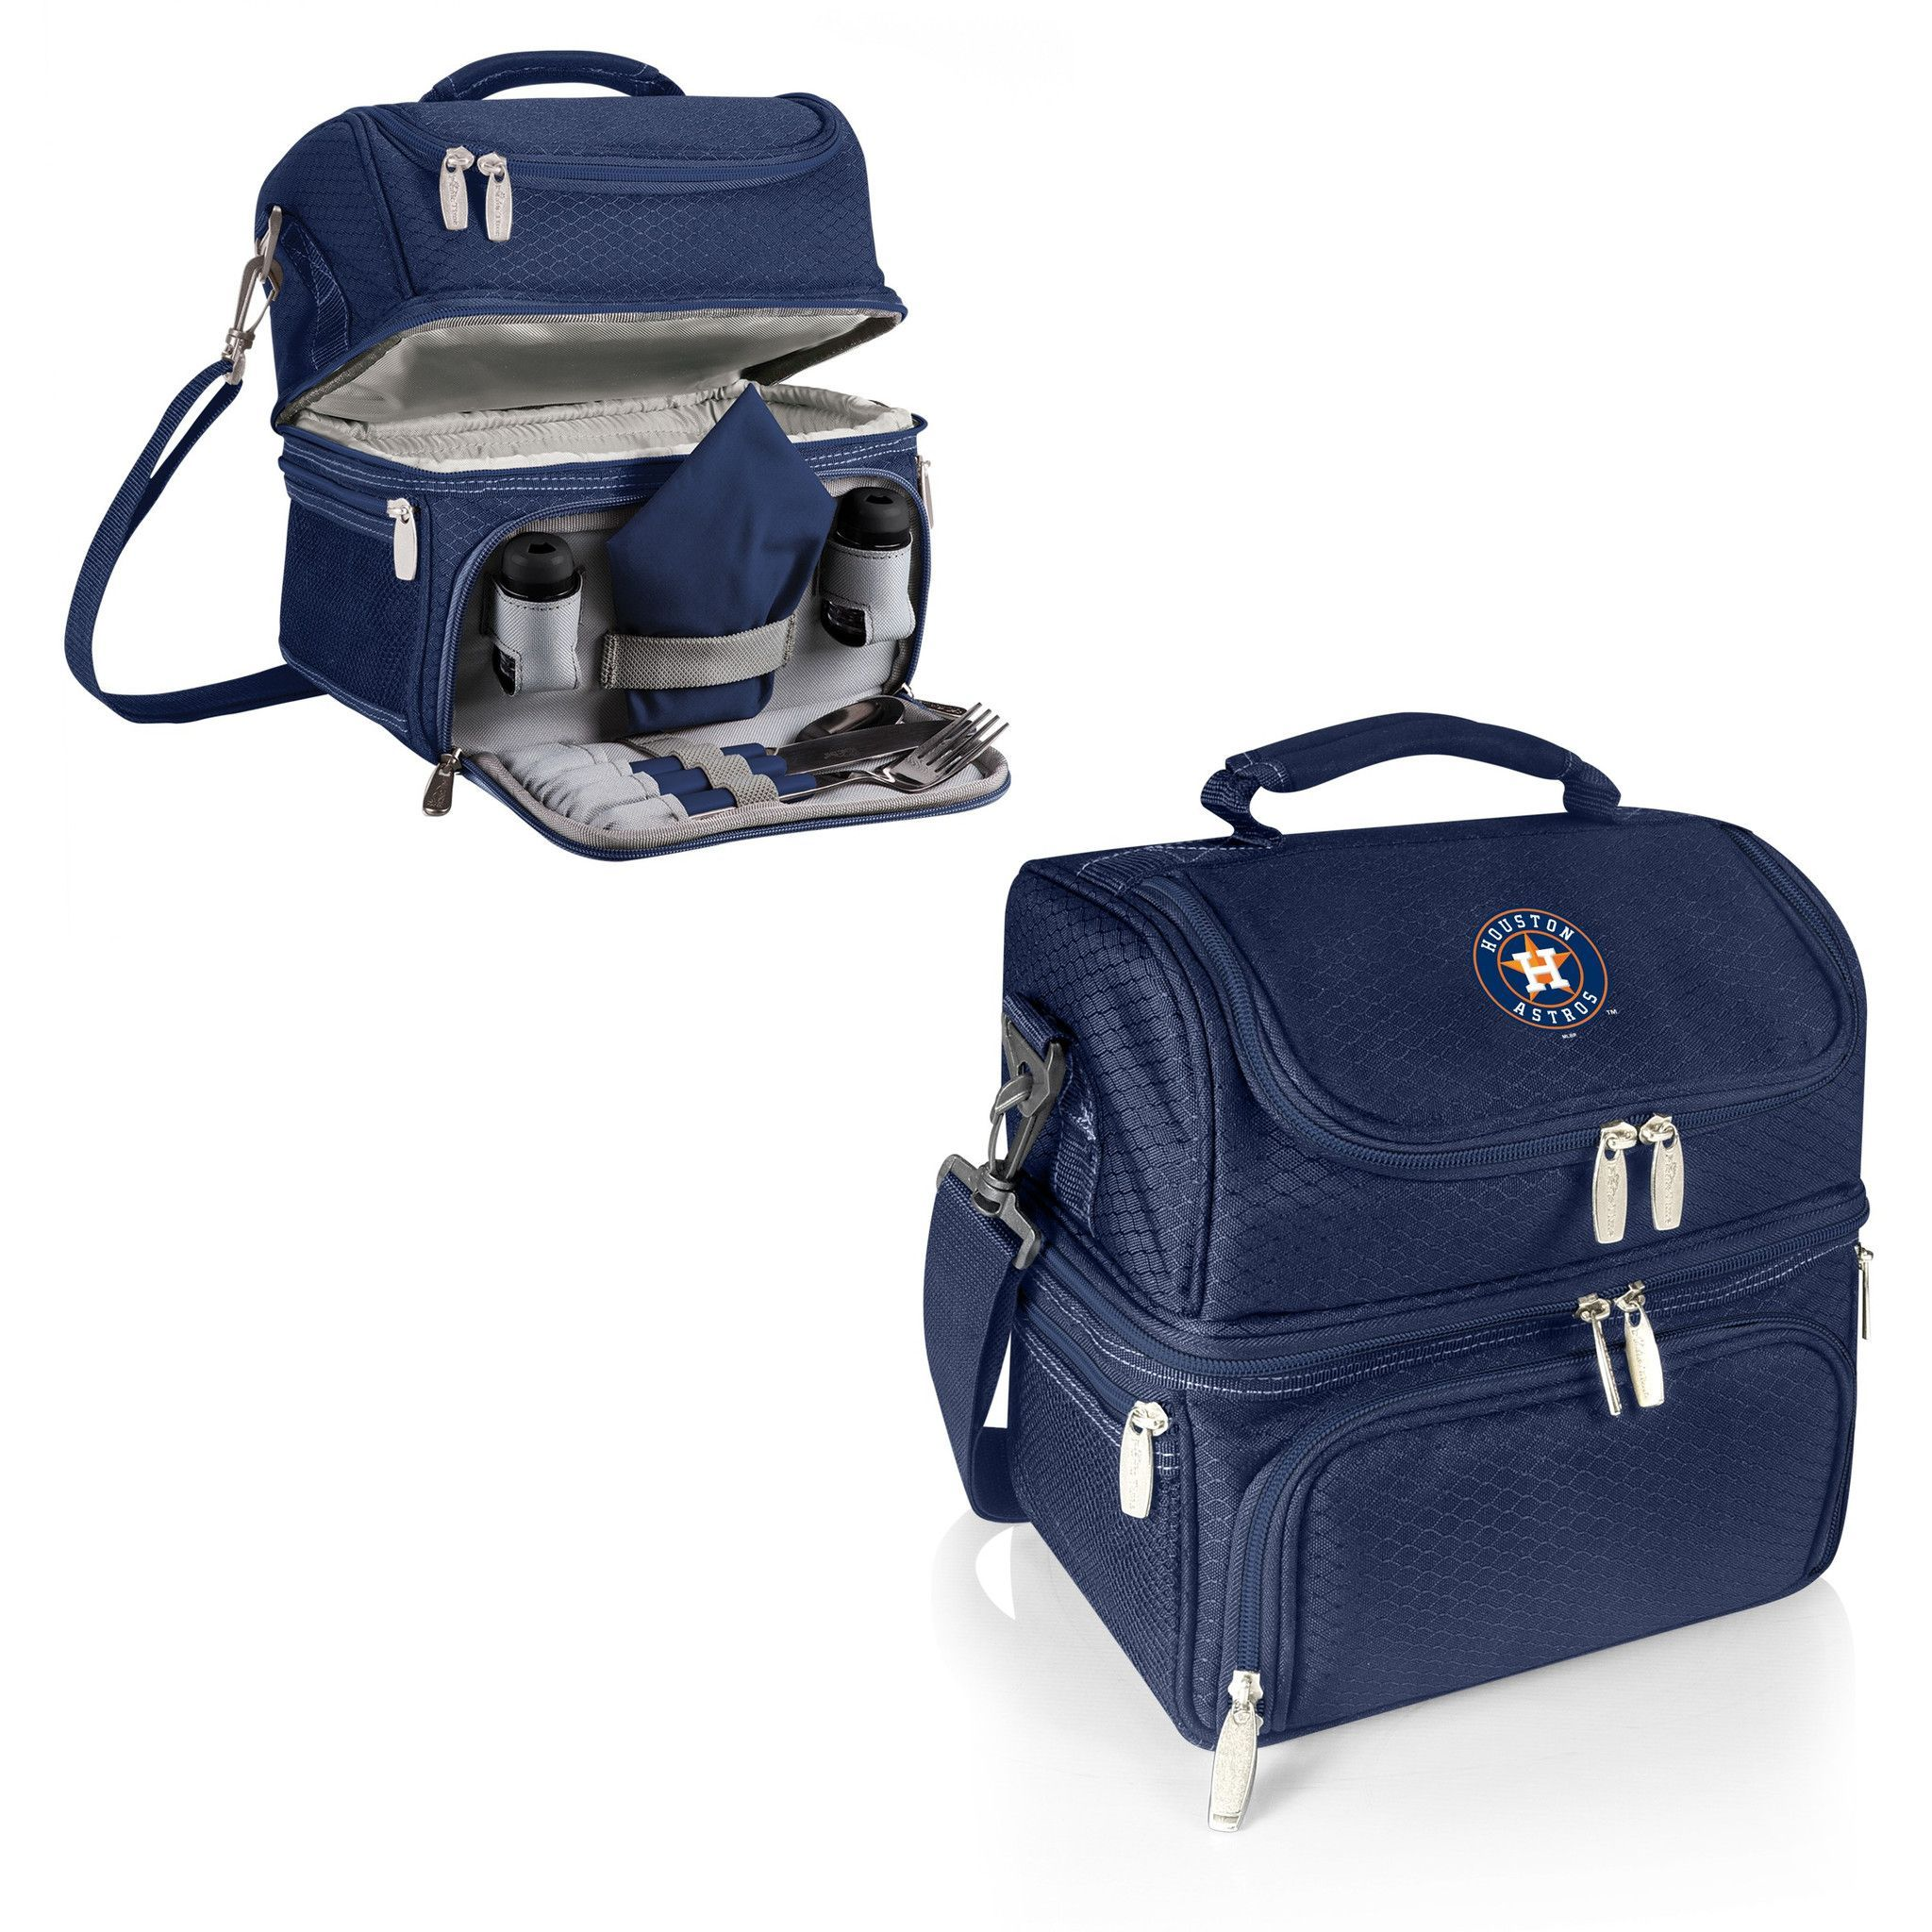 Houston Astros Insulated Lunch Box - Pranzo by Picnic Time  sc 1 st  Pinterest & Houston Astros Insulated Lunch Box - Pranzo by Picnic Time | MLB ... Aboutintivar.Com